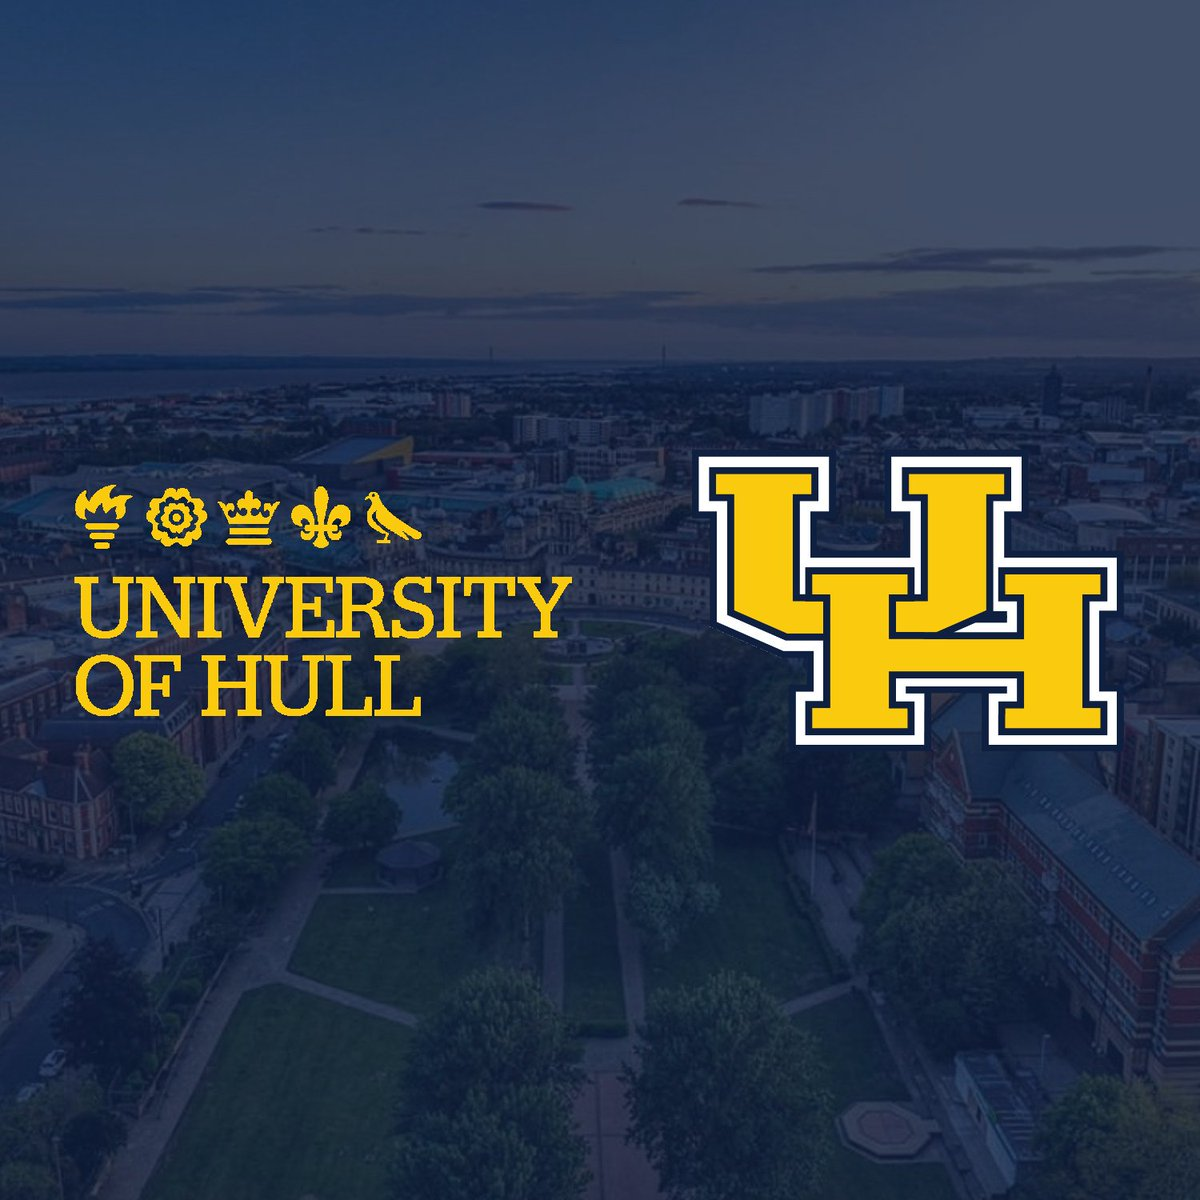 We'd like to say thank you to the University of Hull for their support during these tough times, and we all appreciate the measures that they have put in place.  #hull #hulluni #hulluniversity #response #coronavirus #corona #football #americanfootball pic.twitter.com/qUQn0sVJvR